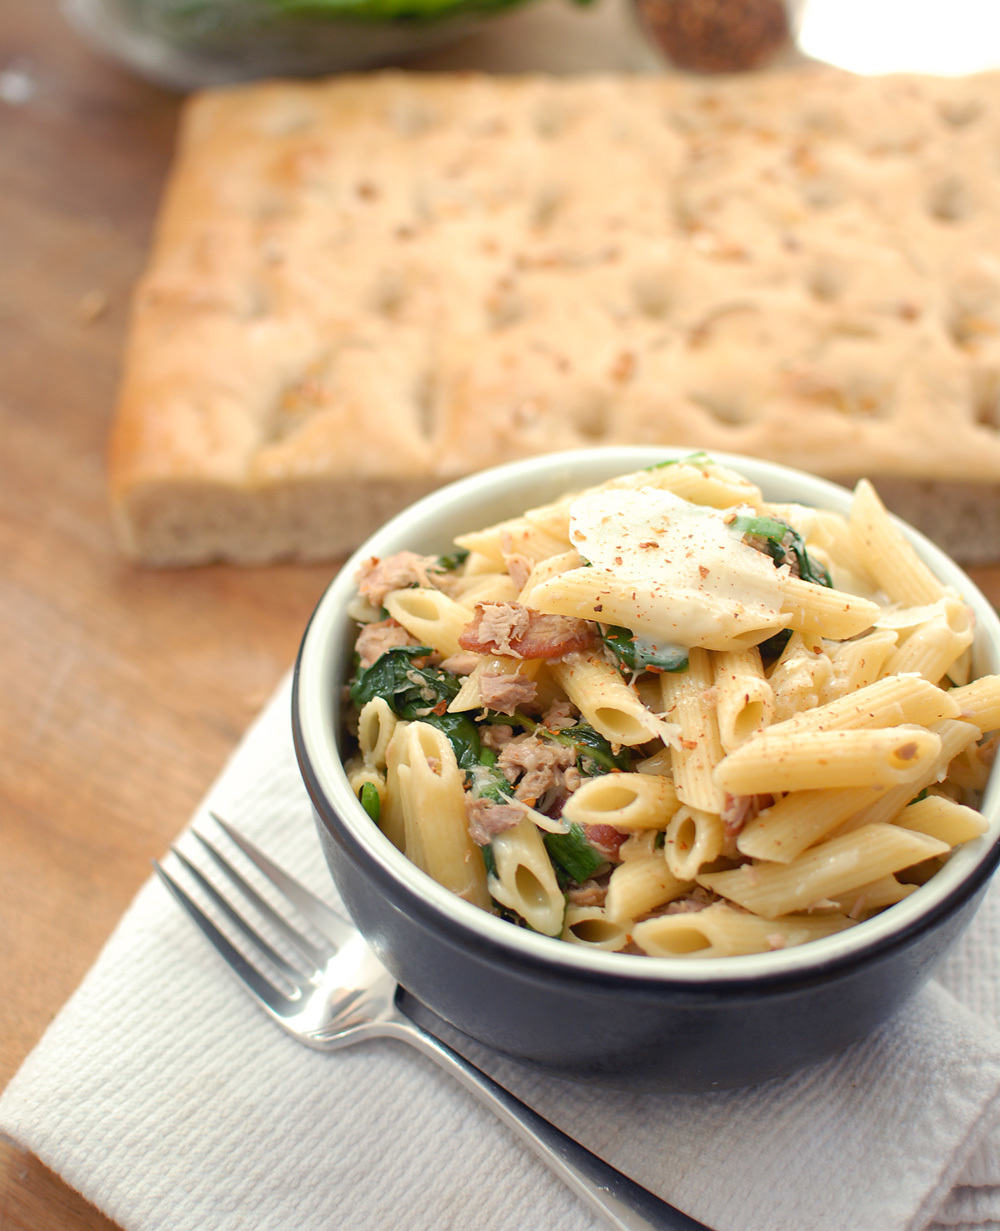 Tuna Tuesday: Tuna, Spinach And Bacon Penne